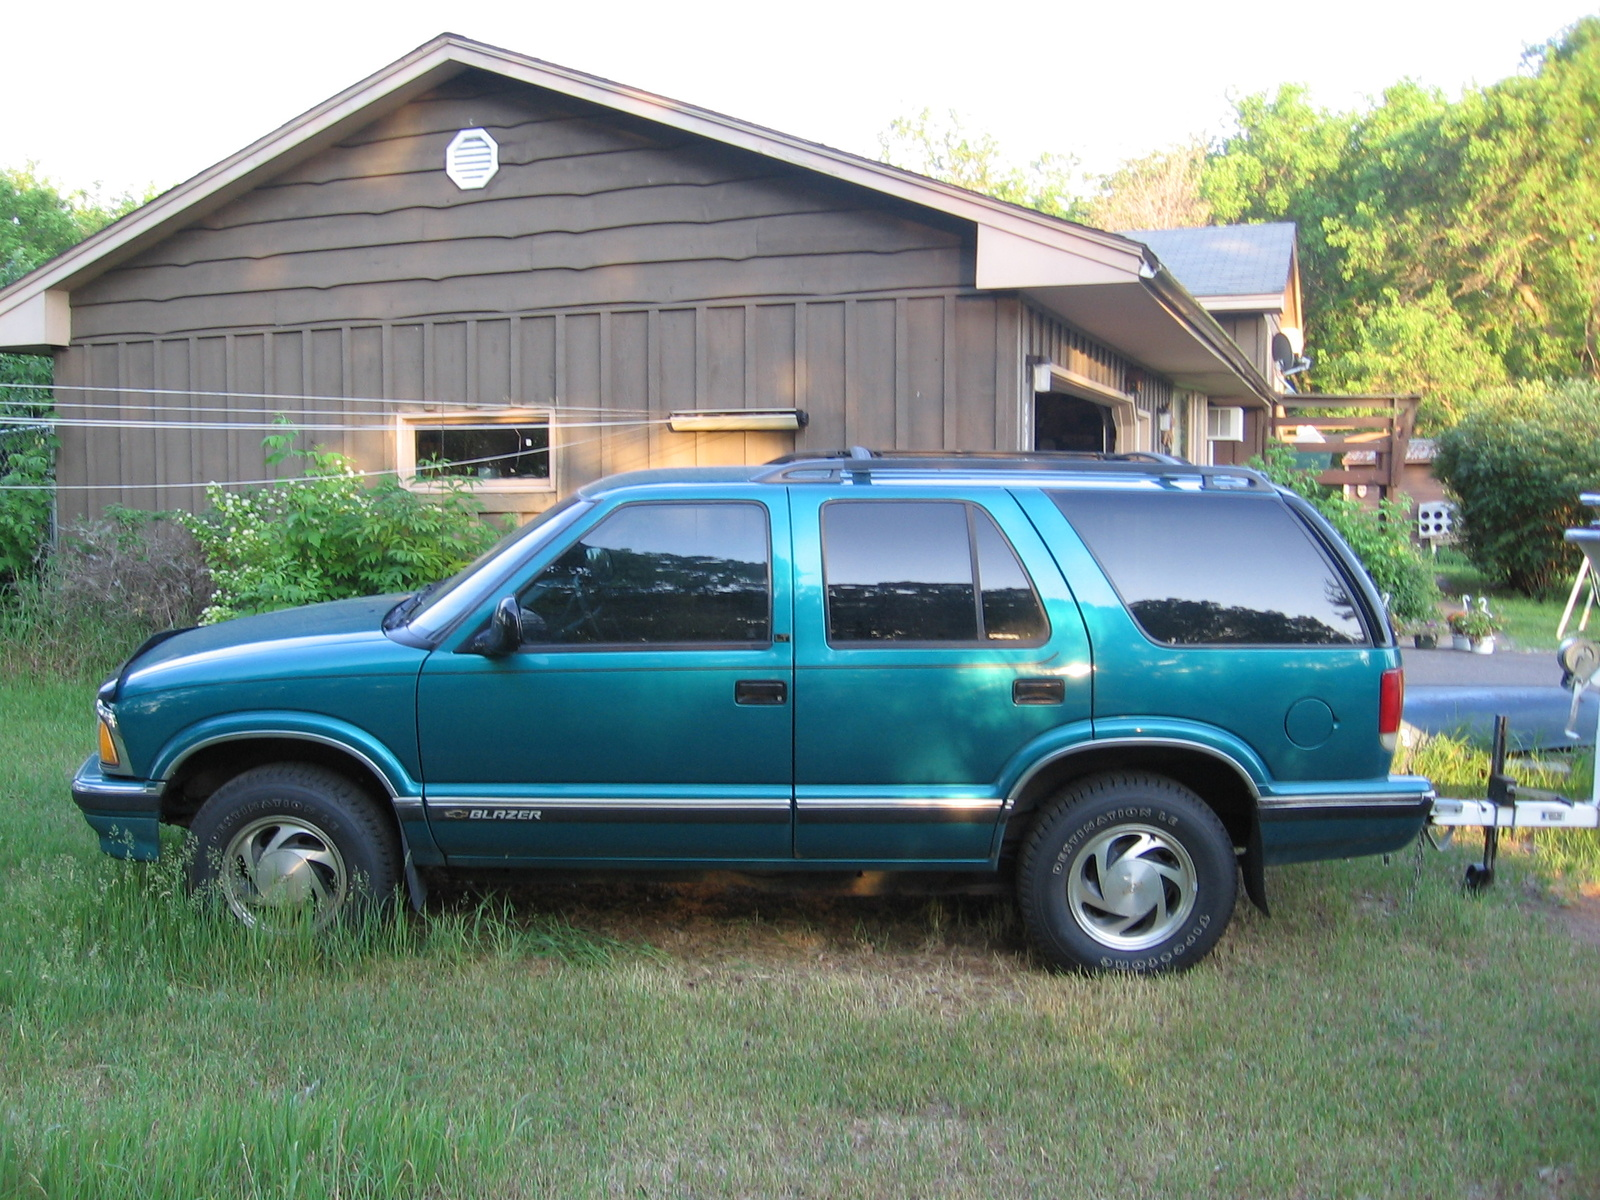 1996 Chevrolet Blazer picture